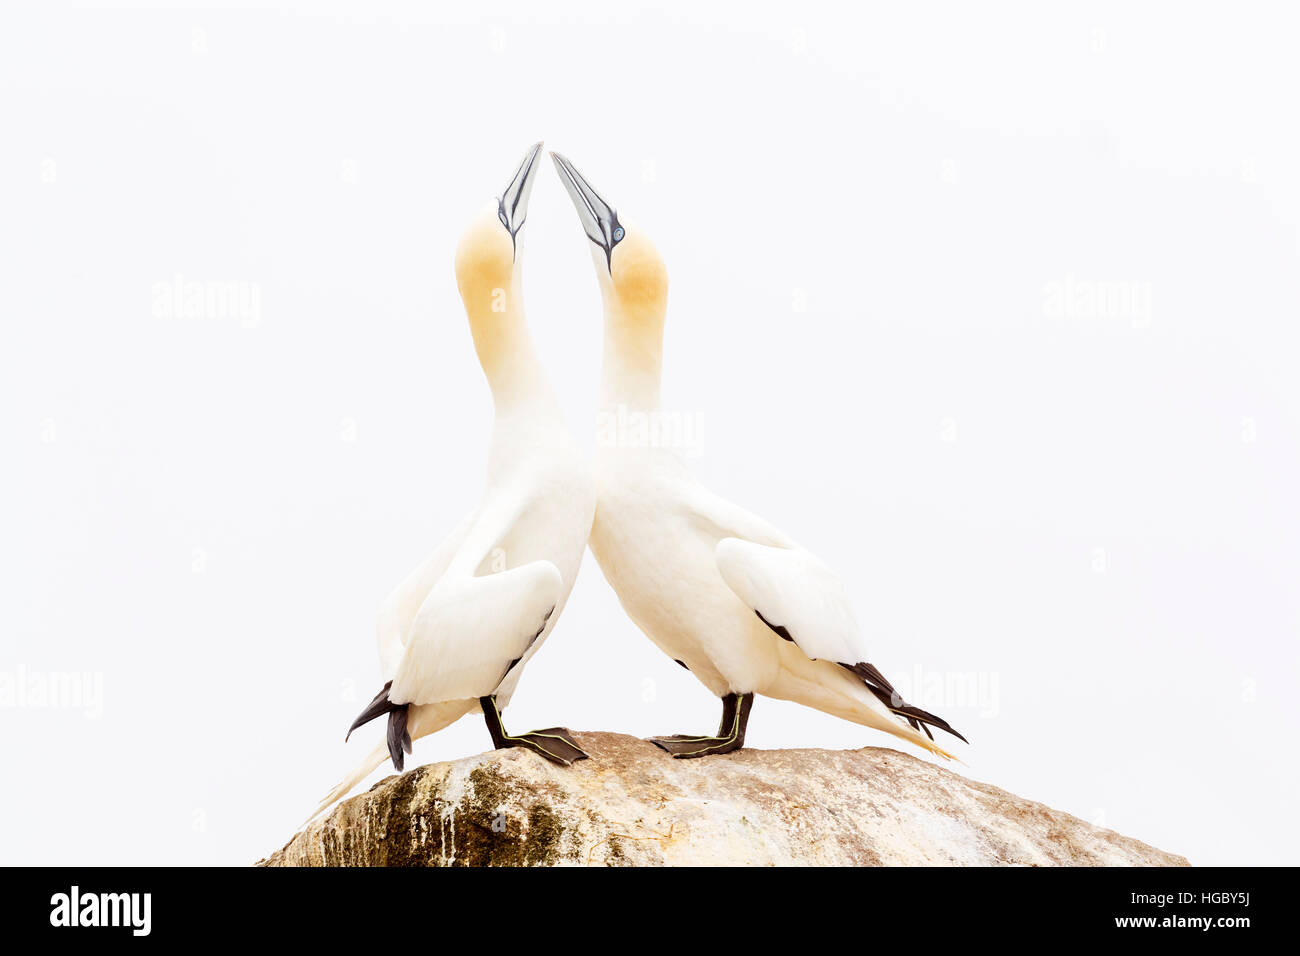 Northern Gannet (Morus bassanus) adult pair, displaying, standing on rock, Great Saltee, Saltee Islands, Ireland - Stock Image